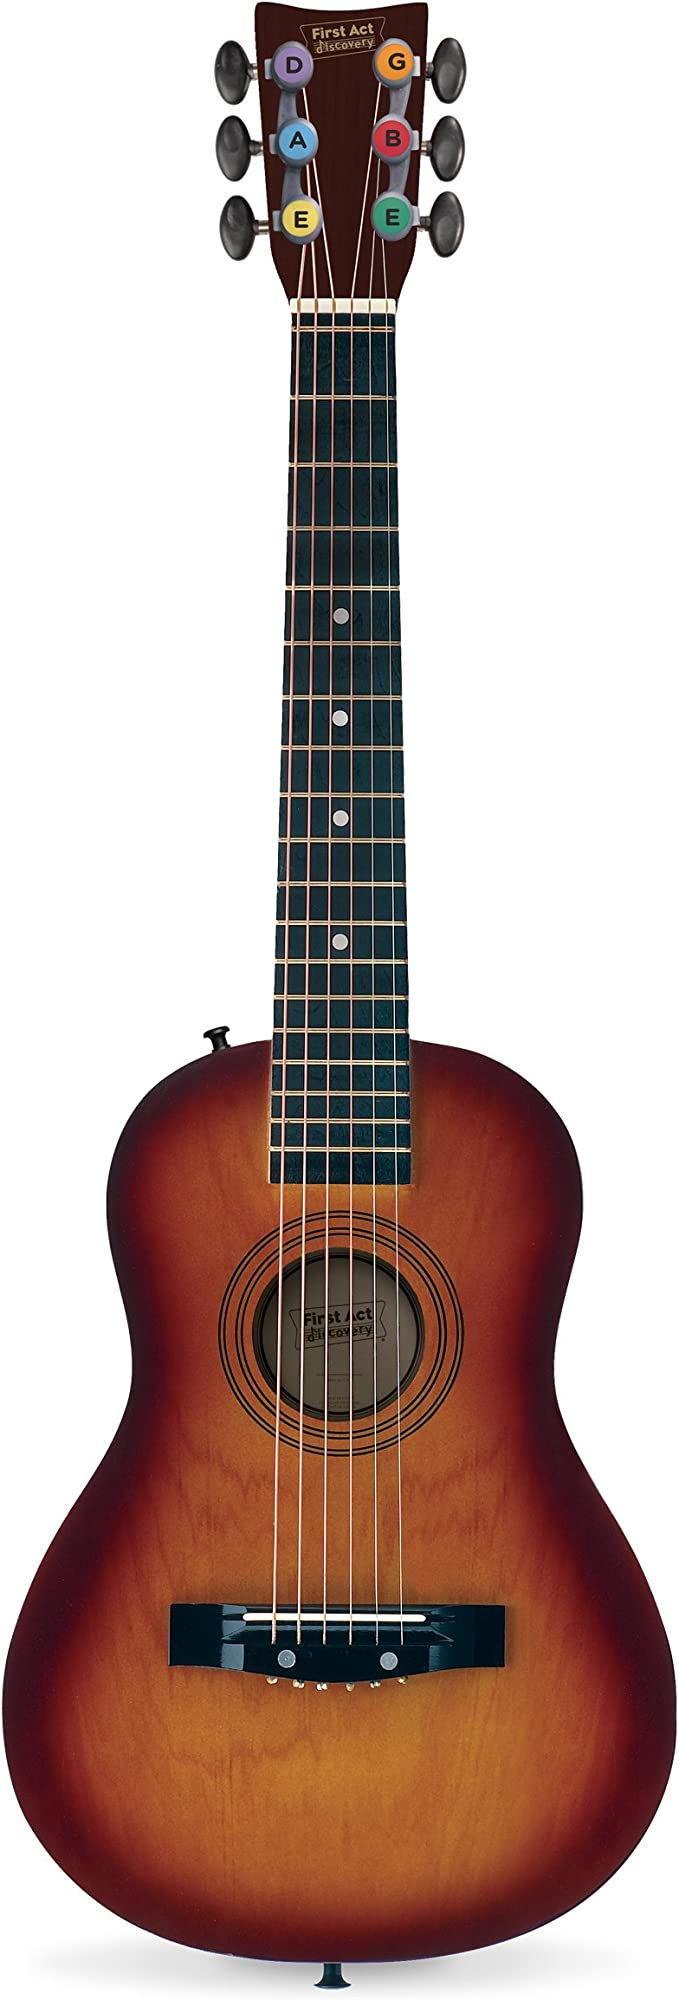 First Act Discovery 30inch Acoustic Guitar Sunburst